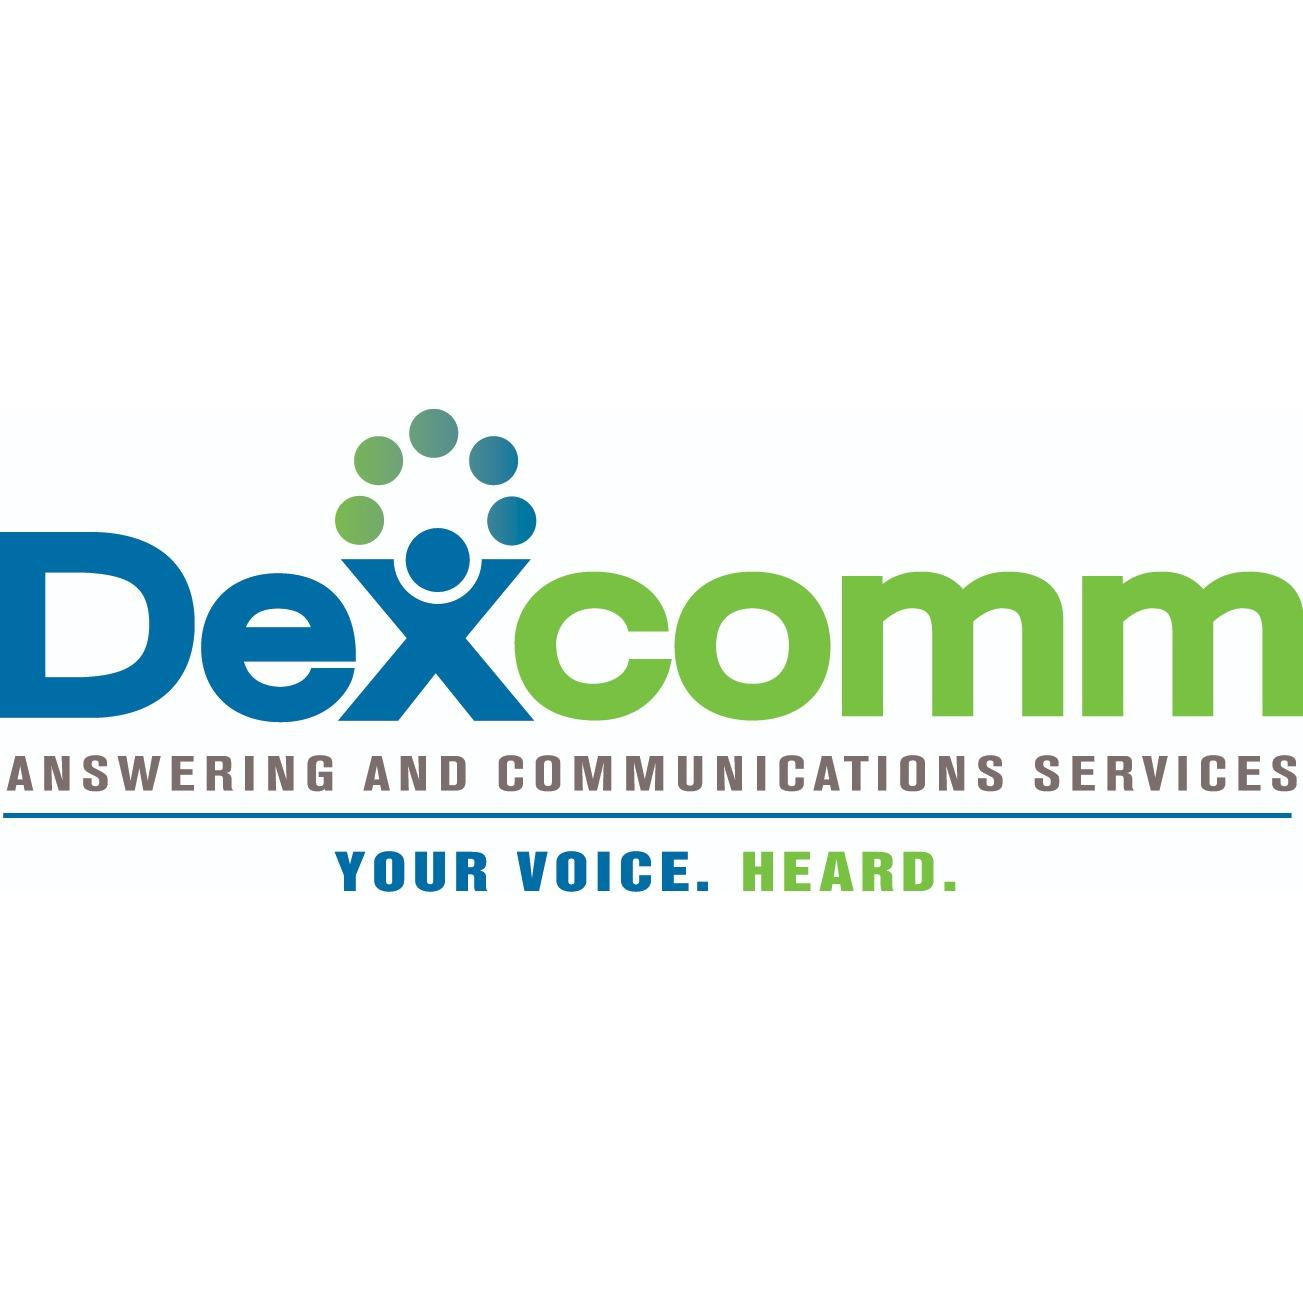 Dexcomm Answering and Communications Services - Carencro, LA - Telecommunications Services